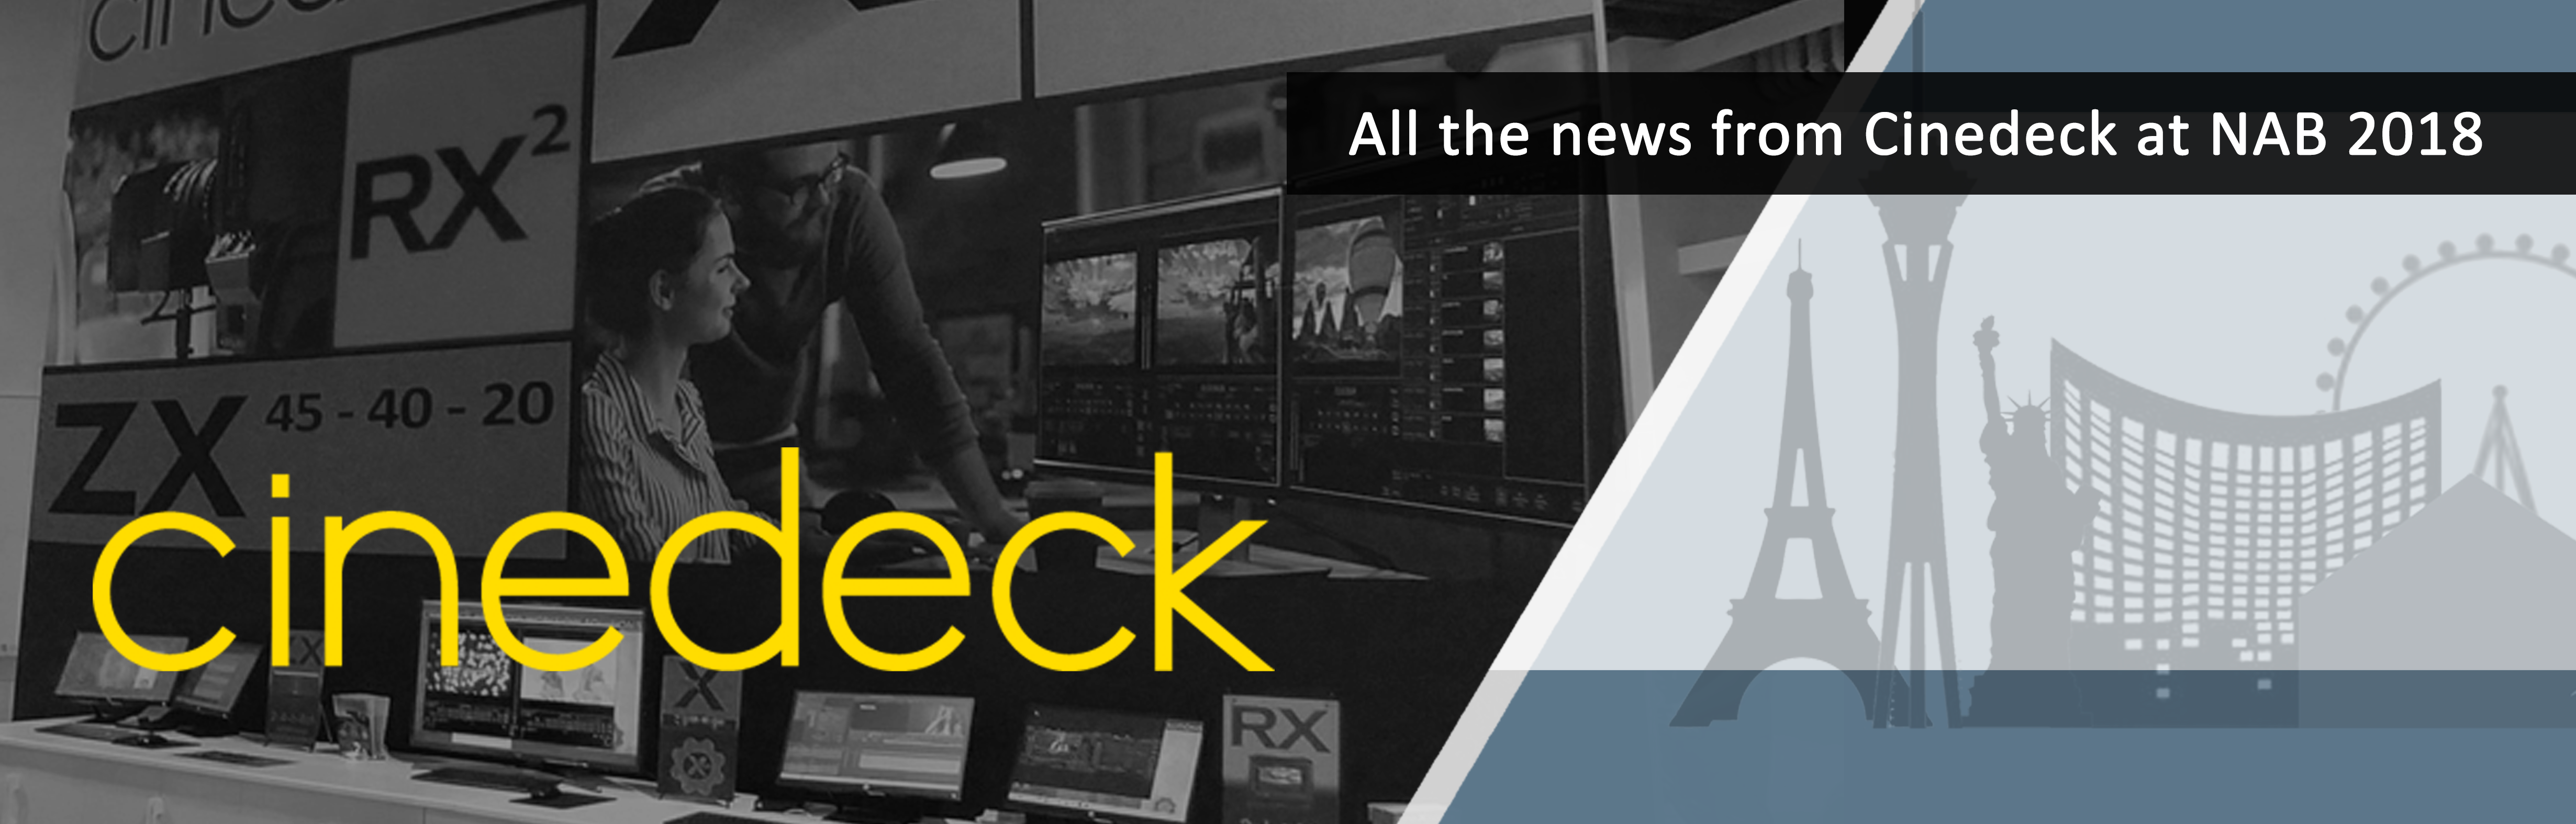 Post NAB 2018 News From Cinedeck_Header